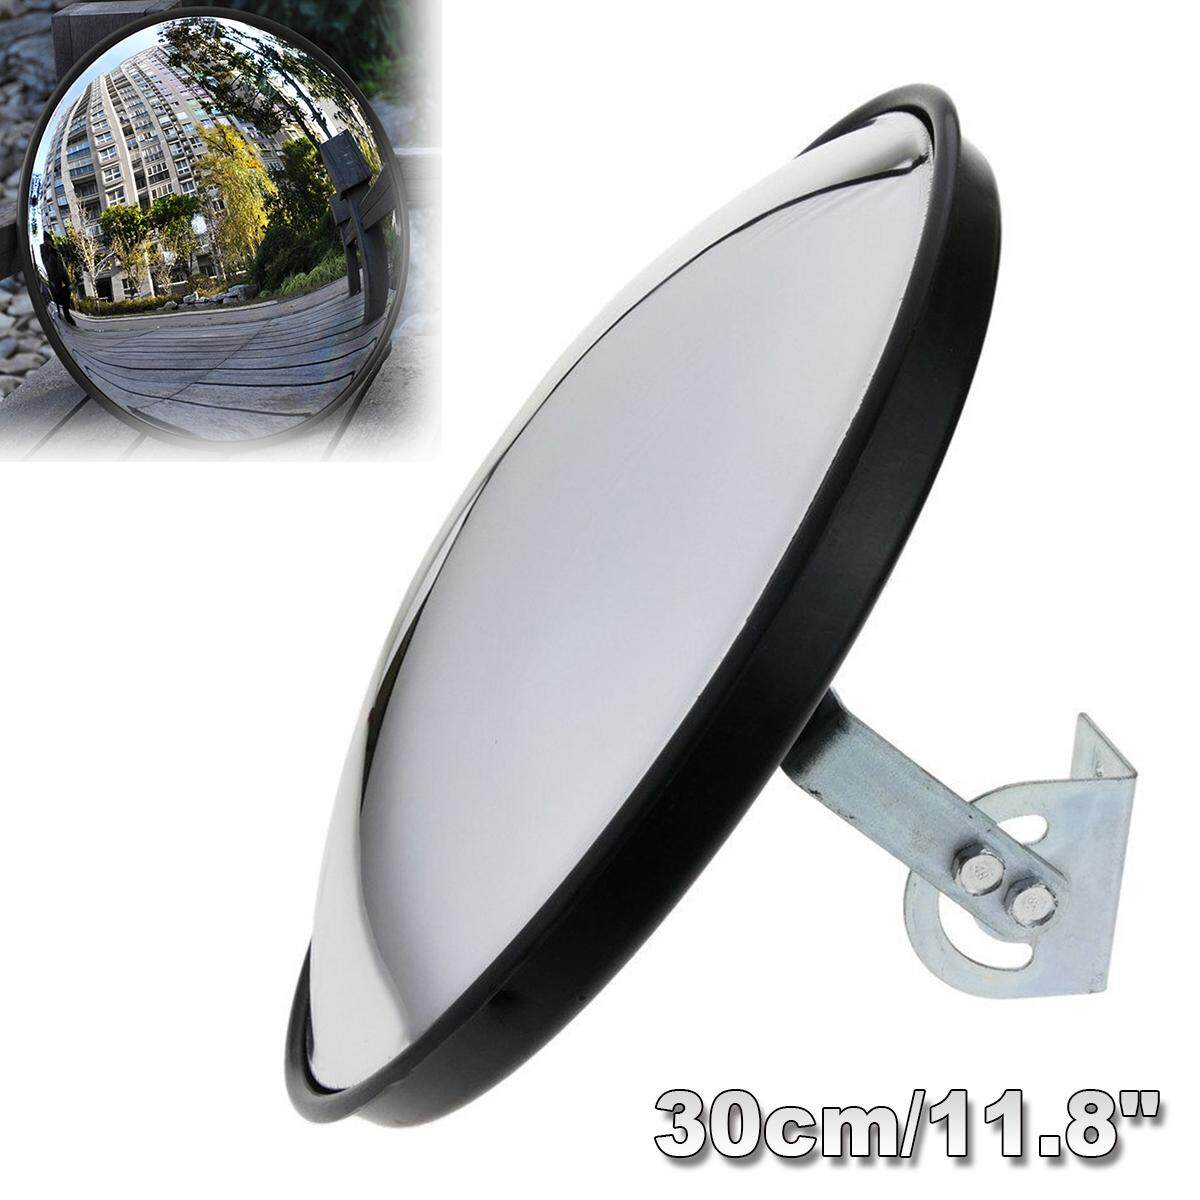 30cm/12 Wide Angle Security Curved Convex Road Mirror Traffic Driveway Safety - intl